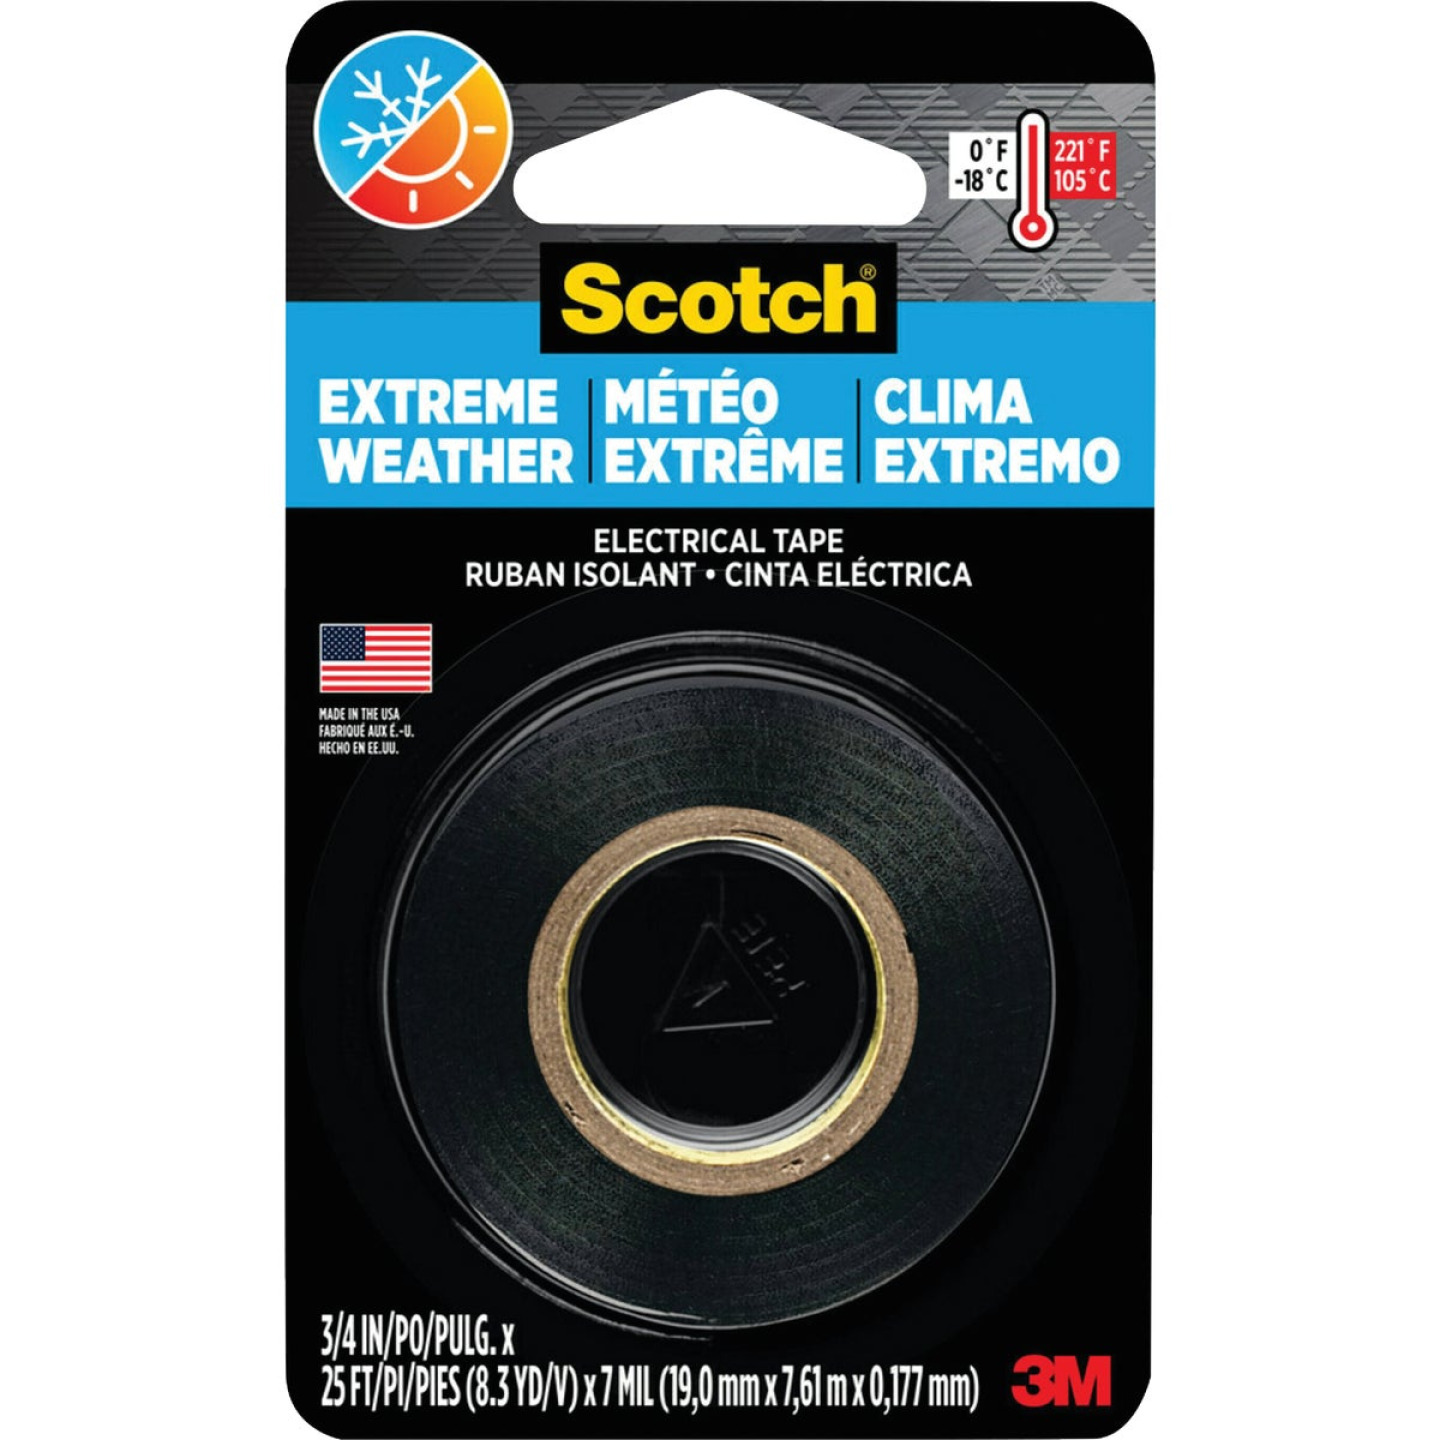 3M Scotch Cold Weather 3/4 In. x 300 In. Electrical Tape Image 1